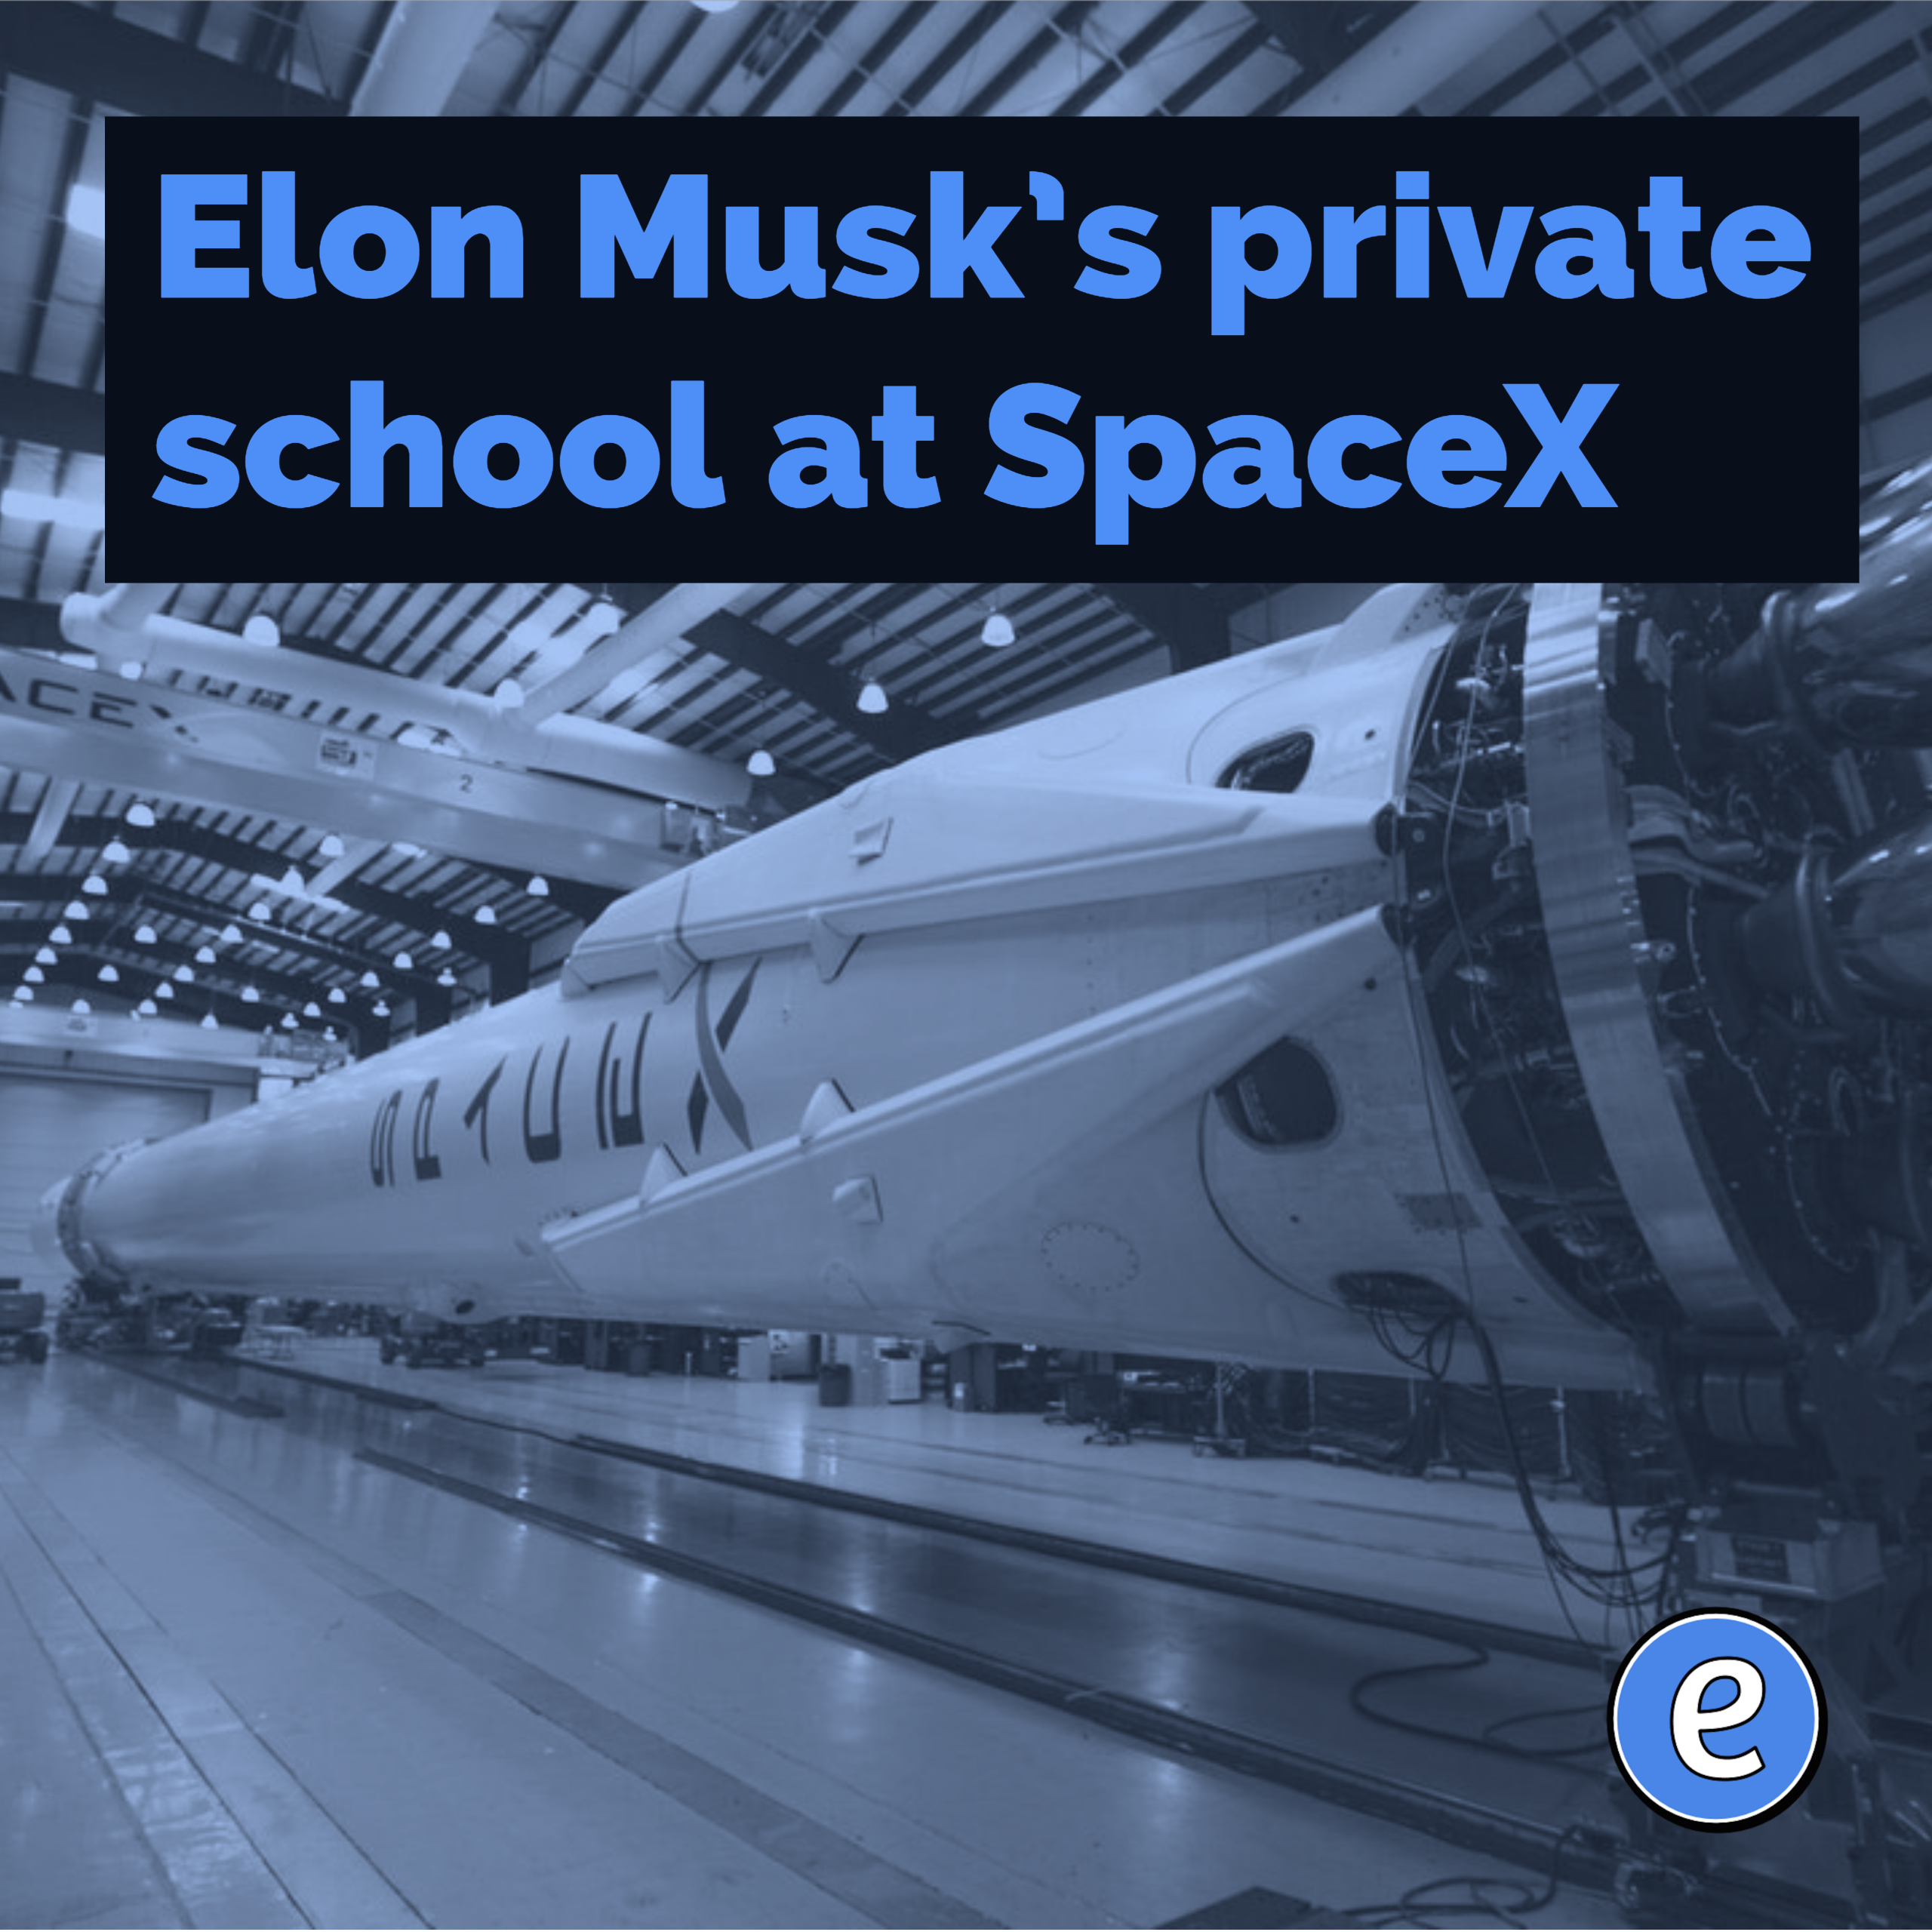 Elon Musk's private school at SpaceX